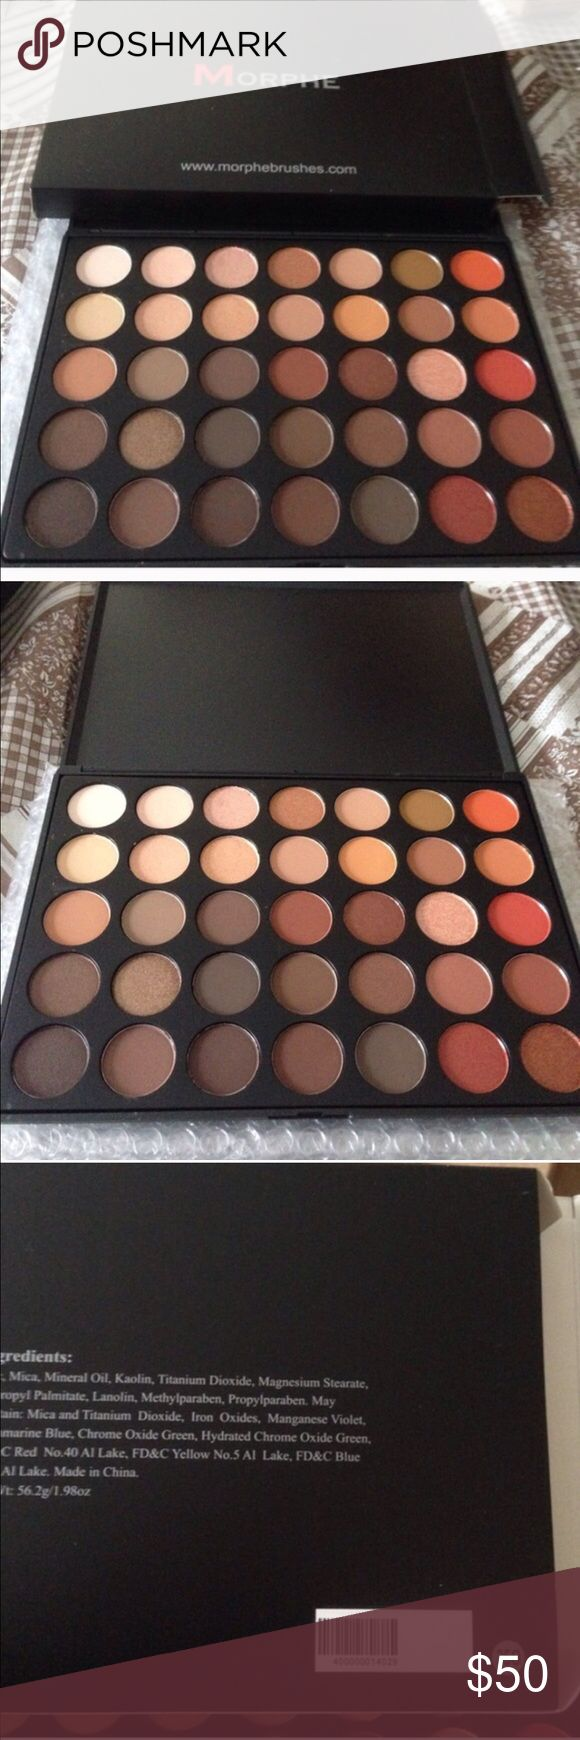 Morphe 350 palette brand new in box Morphe 350 palette never used. I know how much this palette is I also know that shipping is 8.99 plus tax plus I waited 2 months for it to be shipped. I have never used it so I'm selling. You can choose to purchase through me or morphe if in stock or eBay etc. please don't say it's 22 dollars because it is not 22 when said and done it really turns out to be about 37 I paid total. No trades price firm posh only morphe Makeup Eyeshadow